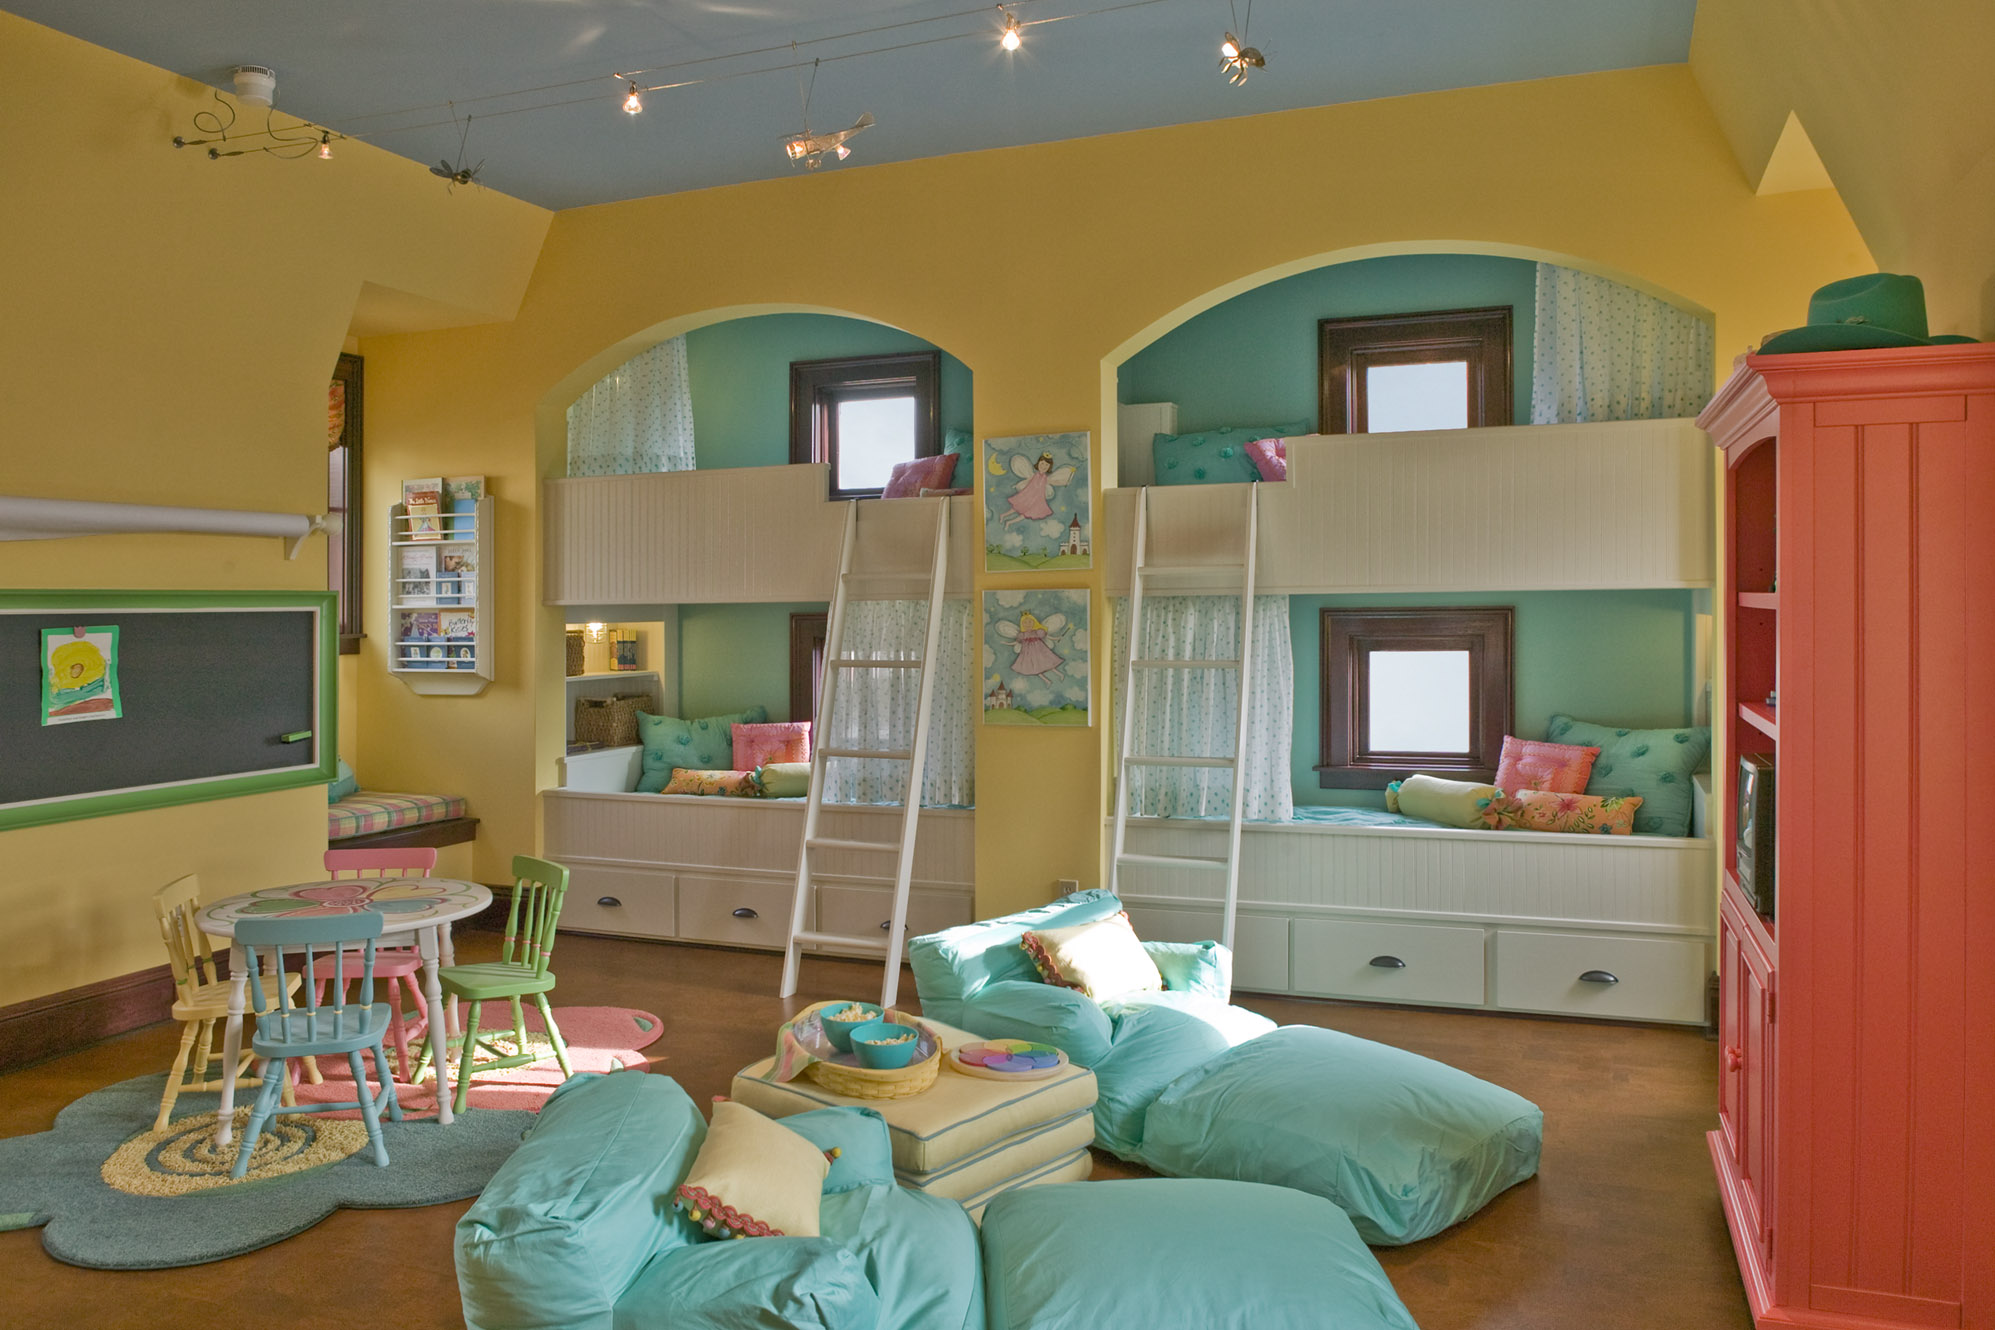 The abc s of decorating k is for kid s rooms decorating den interiors blog decorating tips - Children bedrooms ...